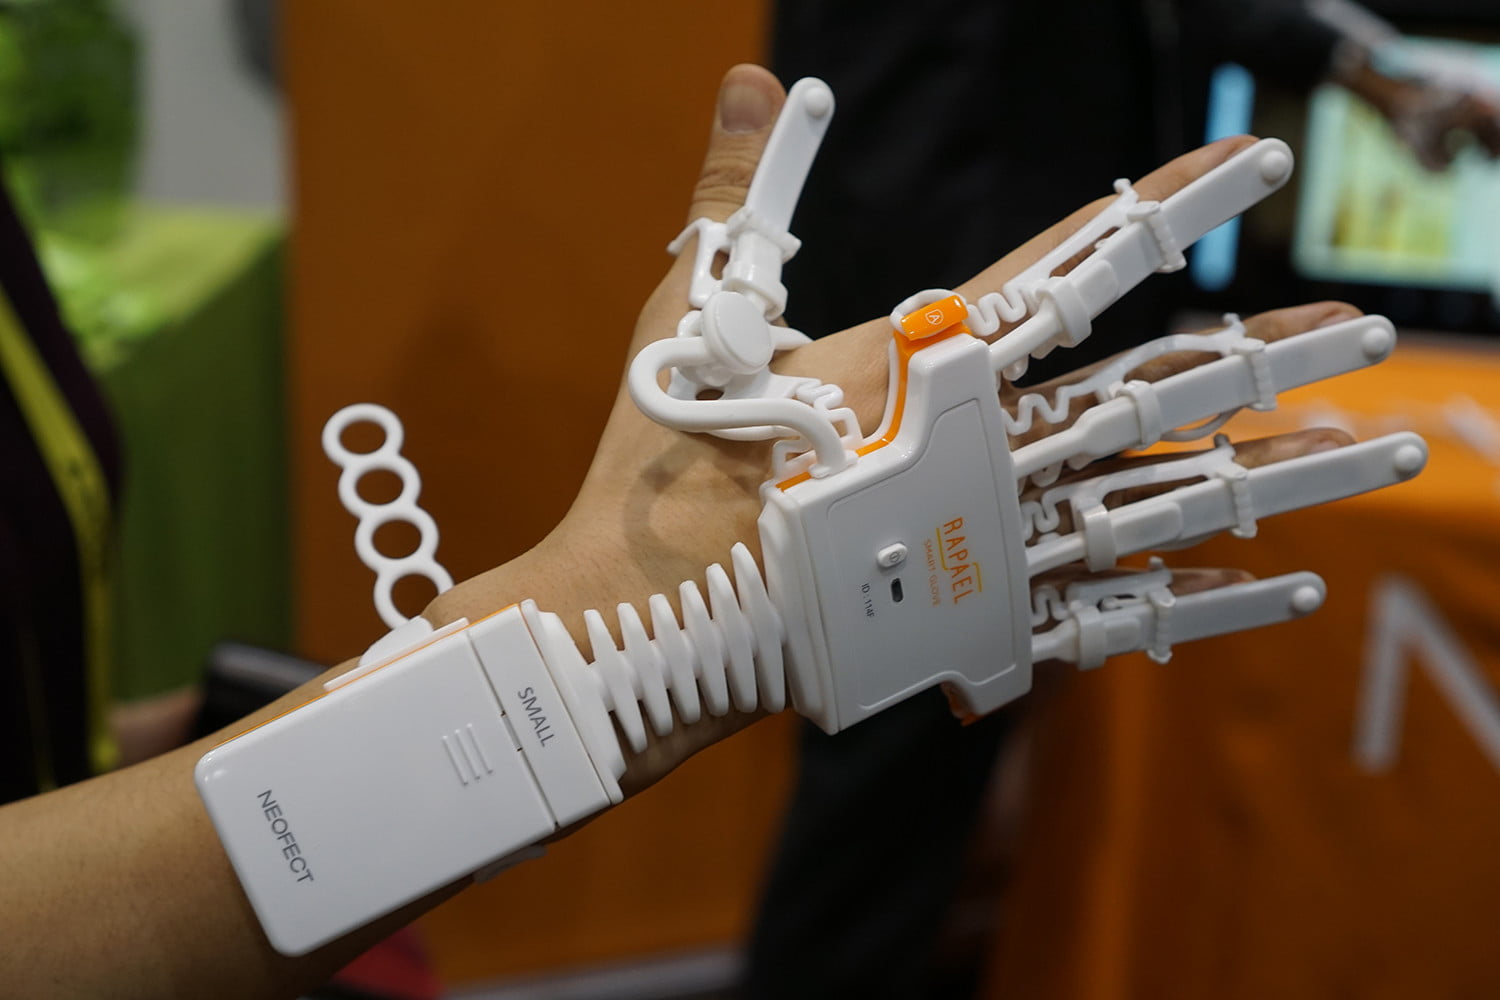 neofect s rapael smart glove may help rehabilitate stroke victims